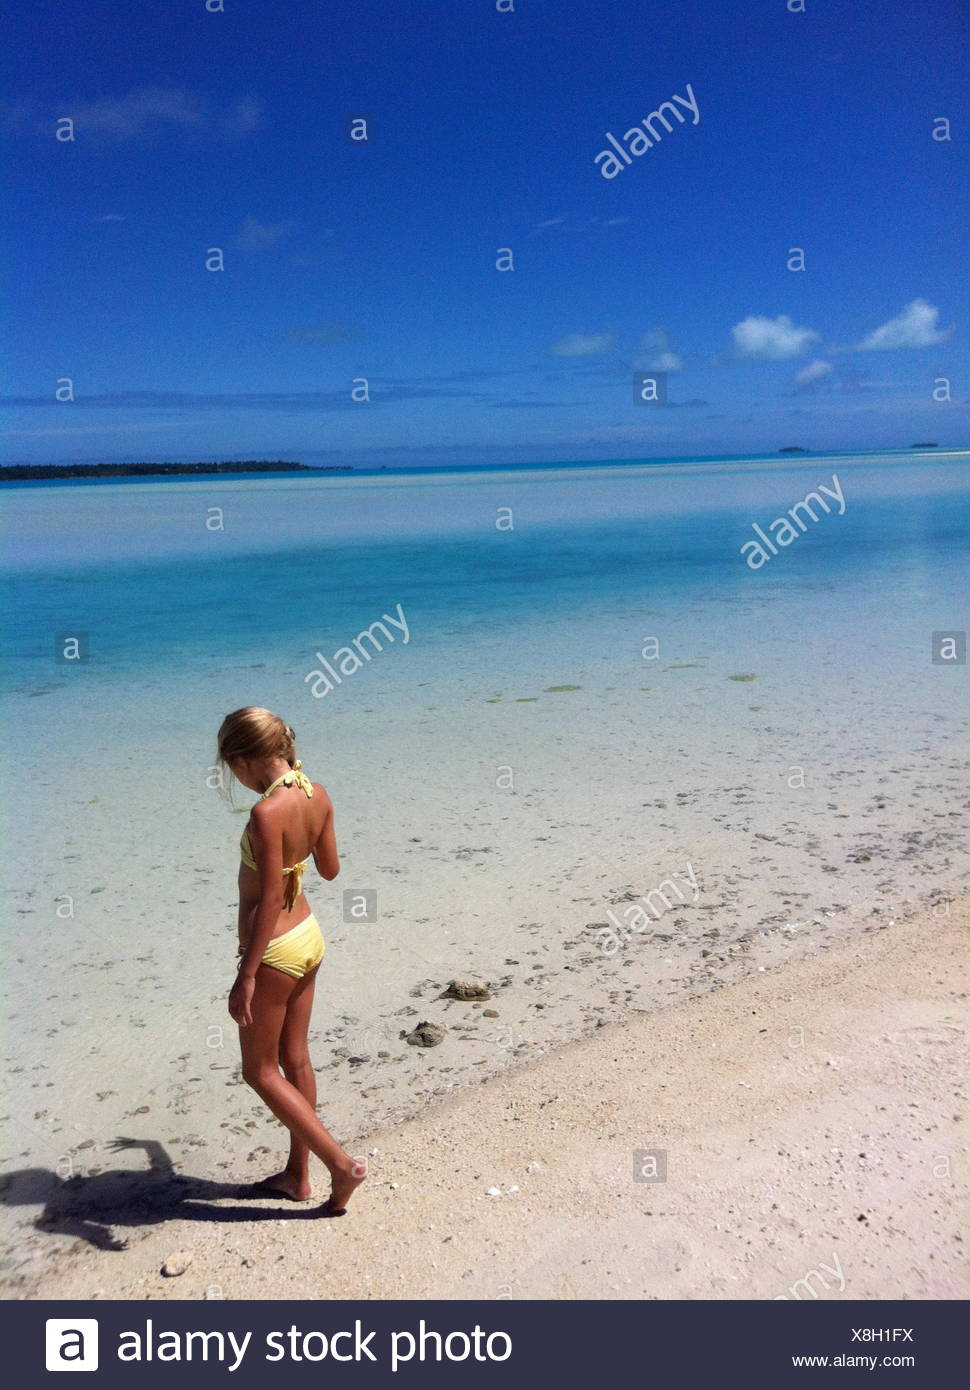 Girl standing on beach at water's edge - Stock Image